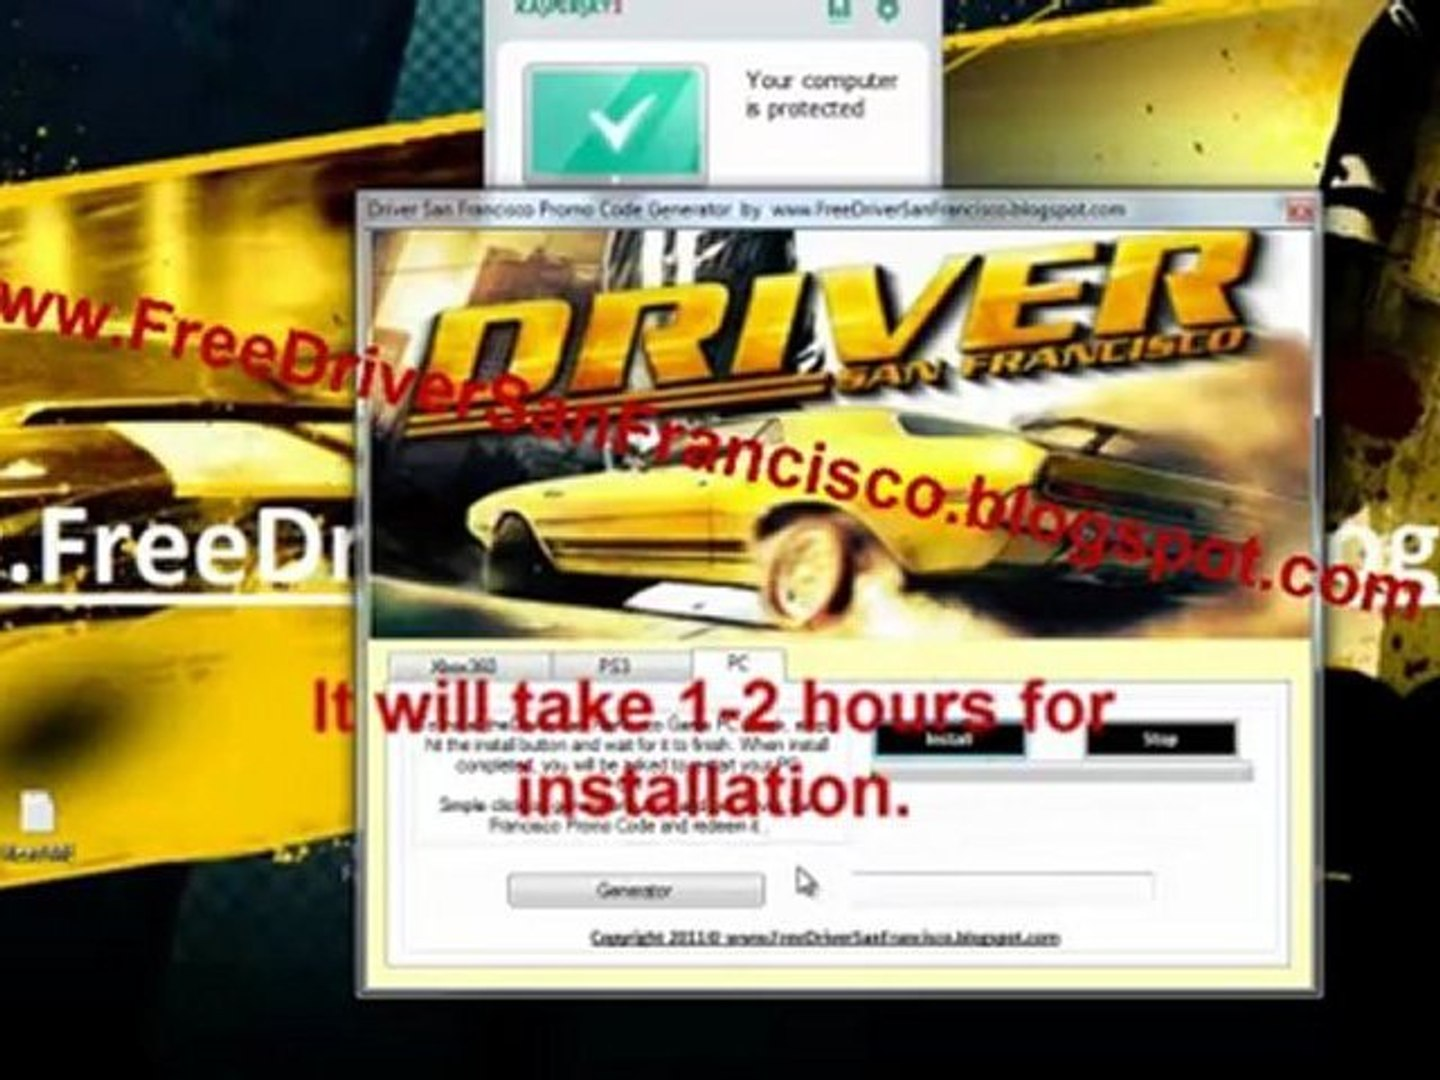 Driver San Francisco Code Generator Free For Xbox 360 And Ps3 Video Dailymotion